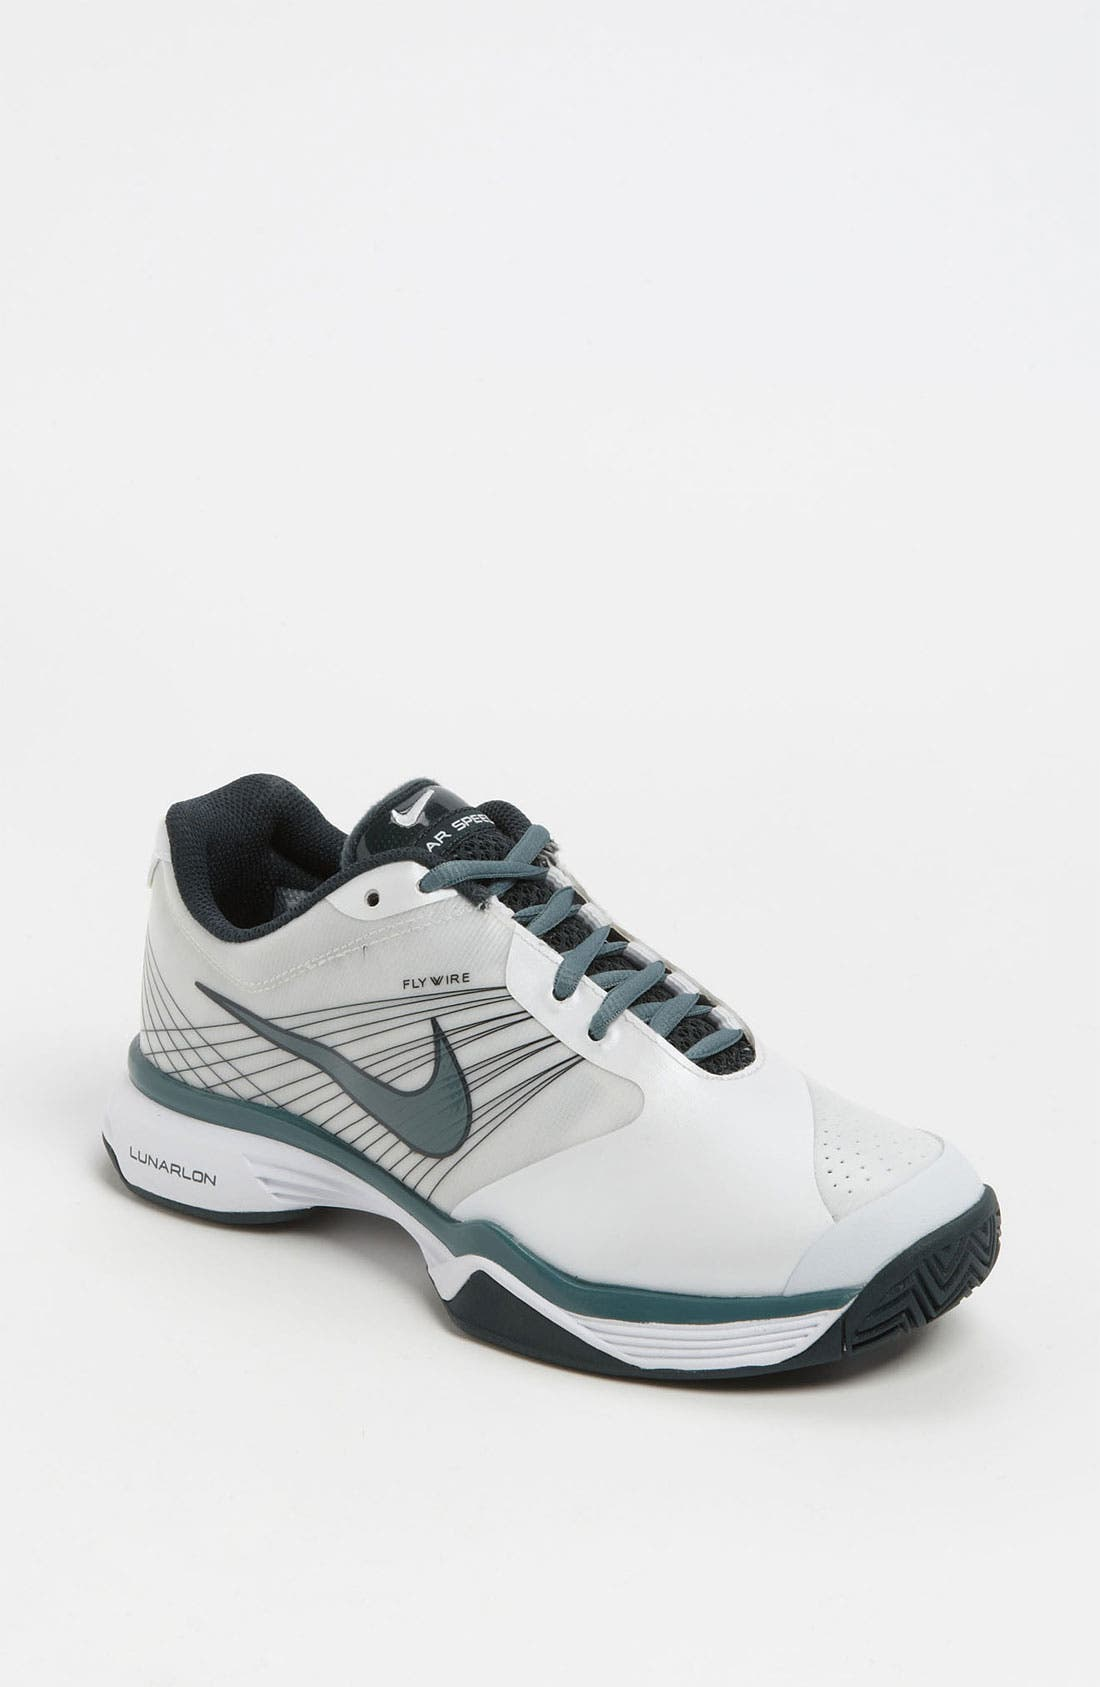 Alternate Image 1 Selected - Nike 'Lunar Speed 3' Tennis Shoe (Women)